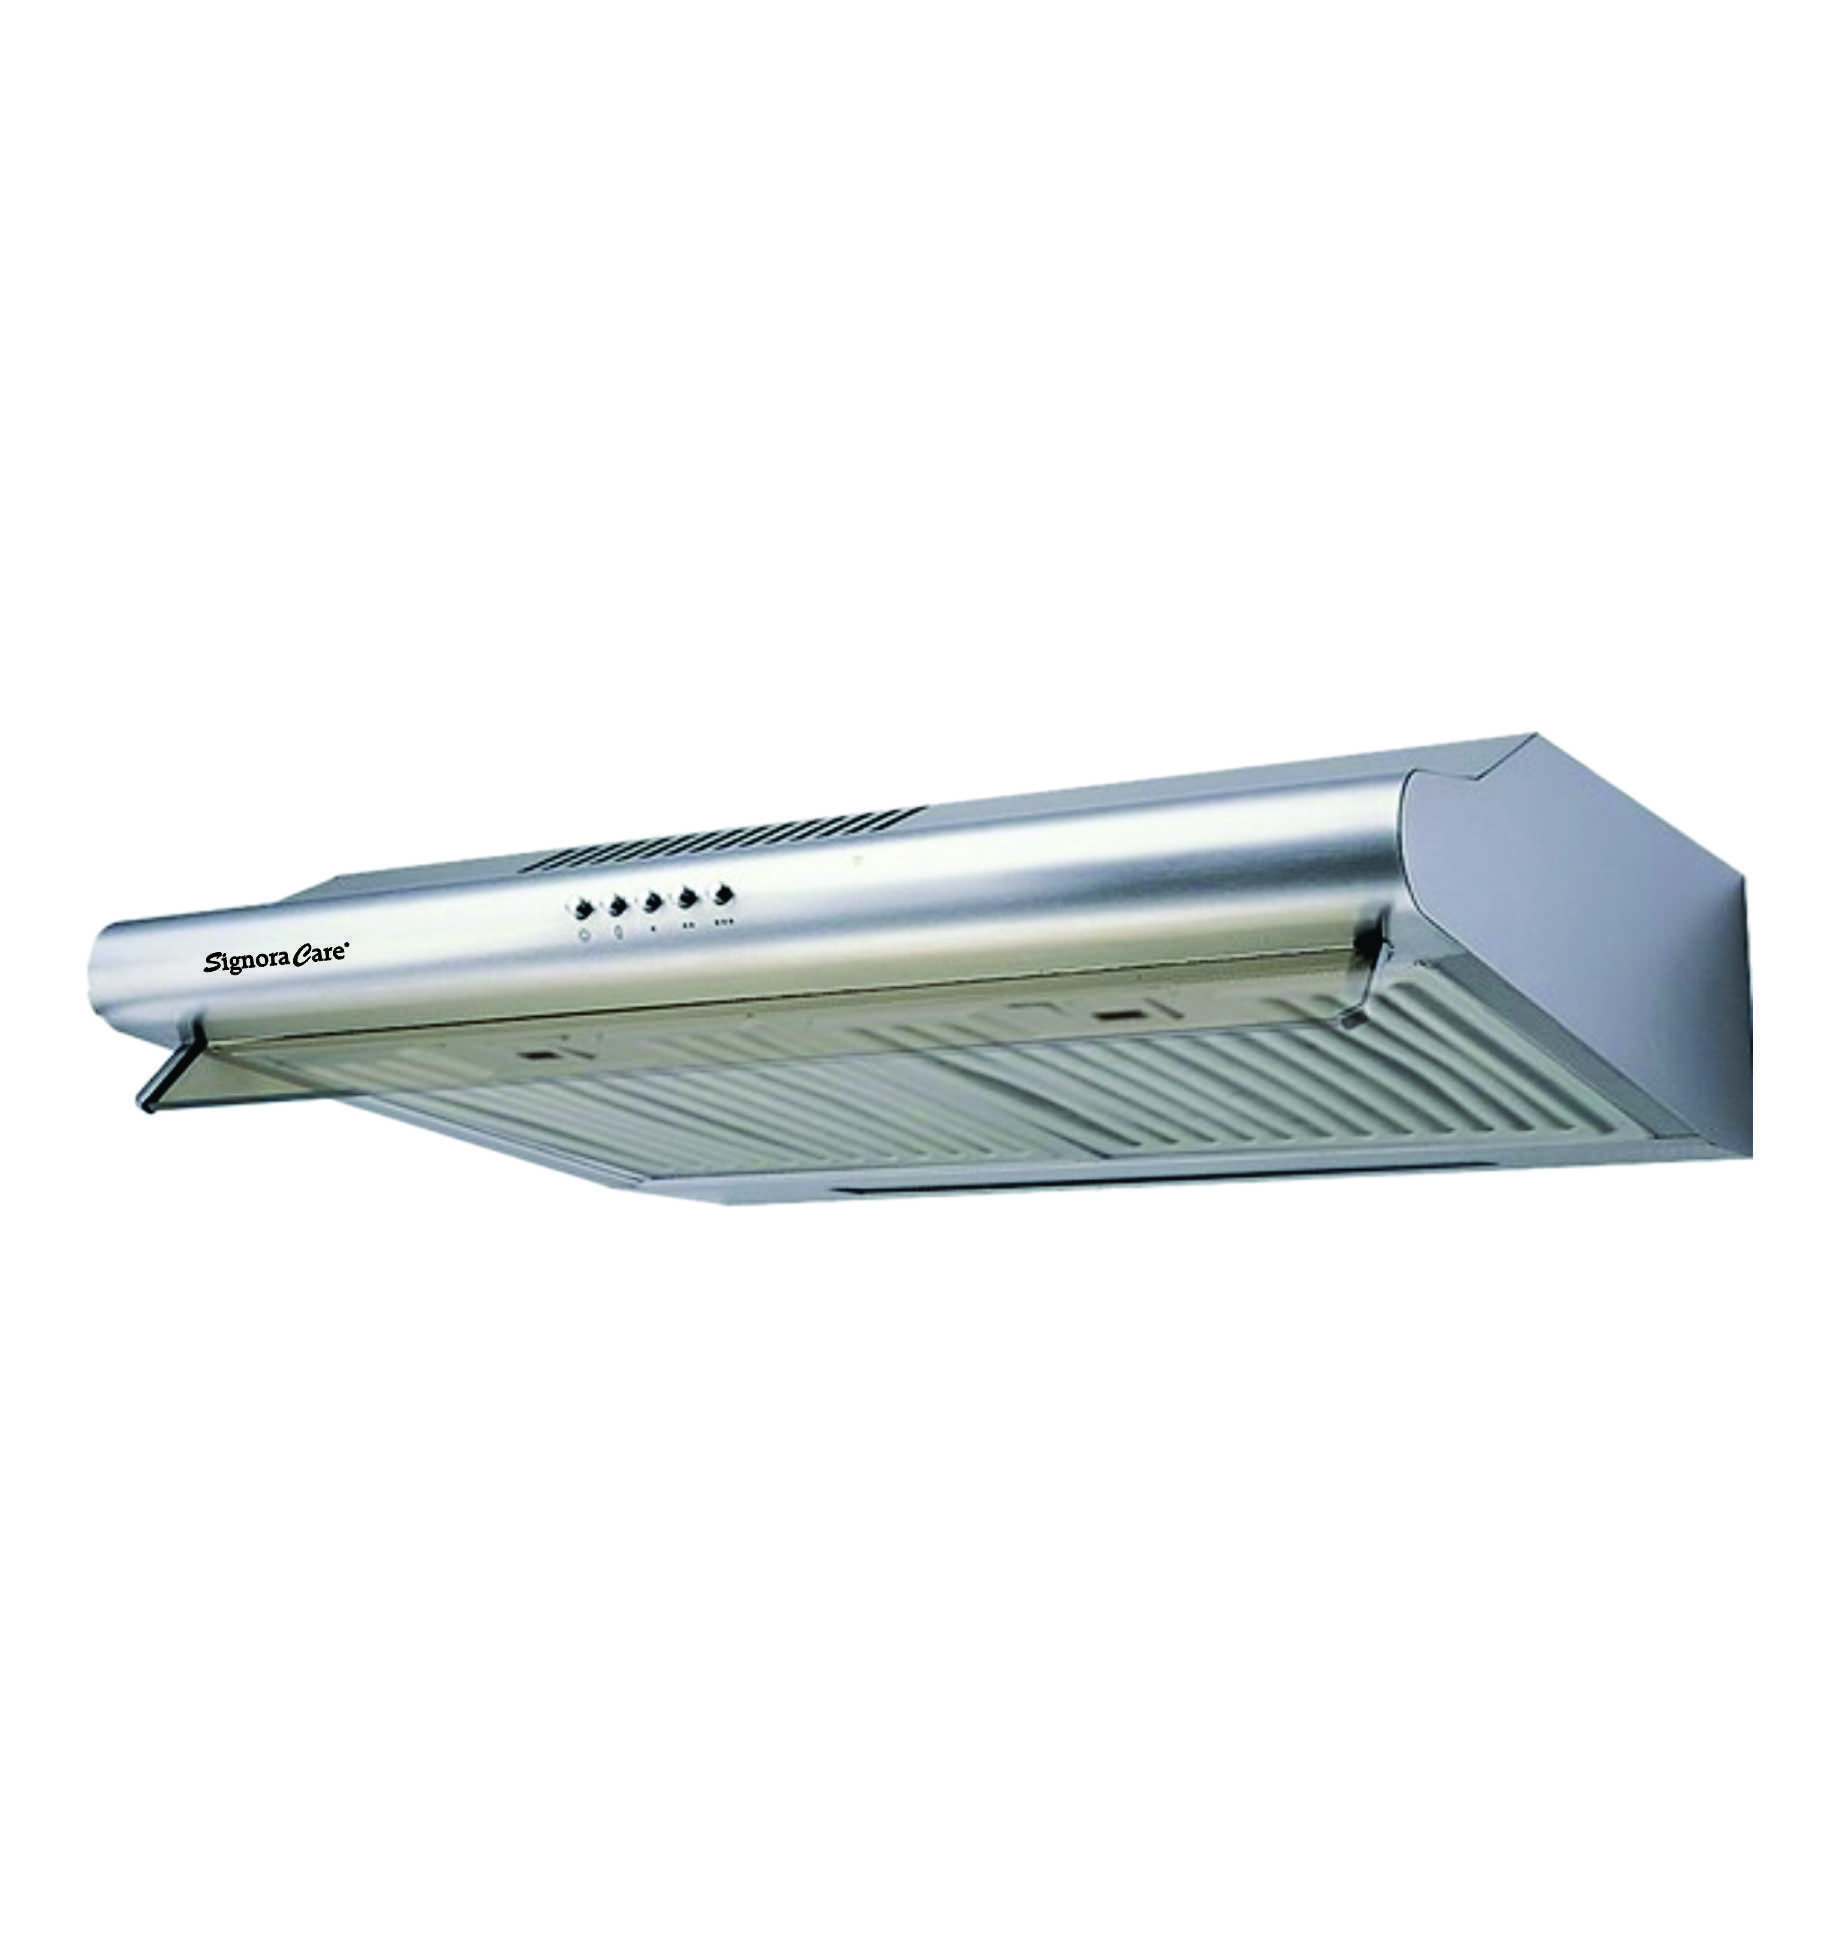 SignoraCare 600m3/hour suction Electric Chimney BAFFLE Filter